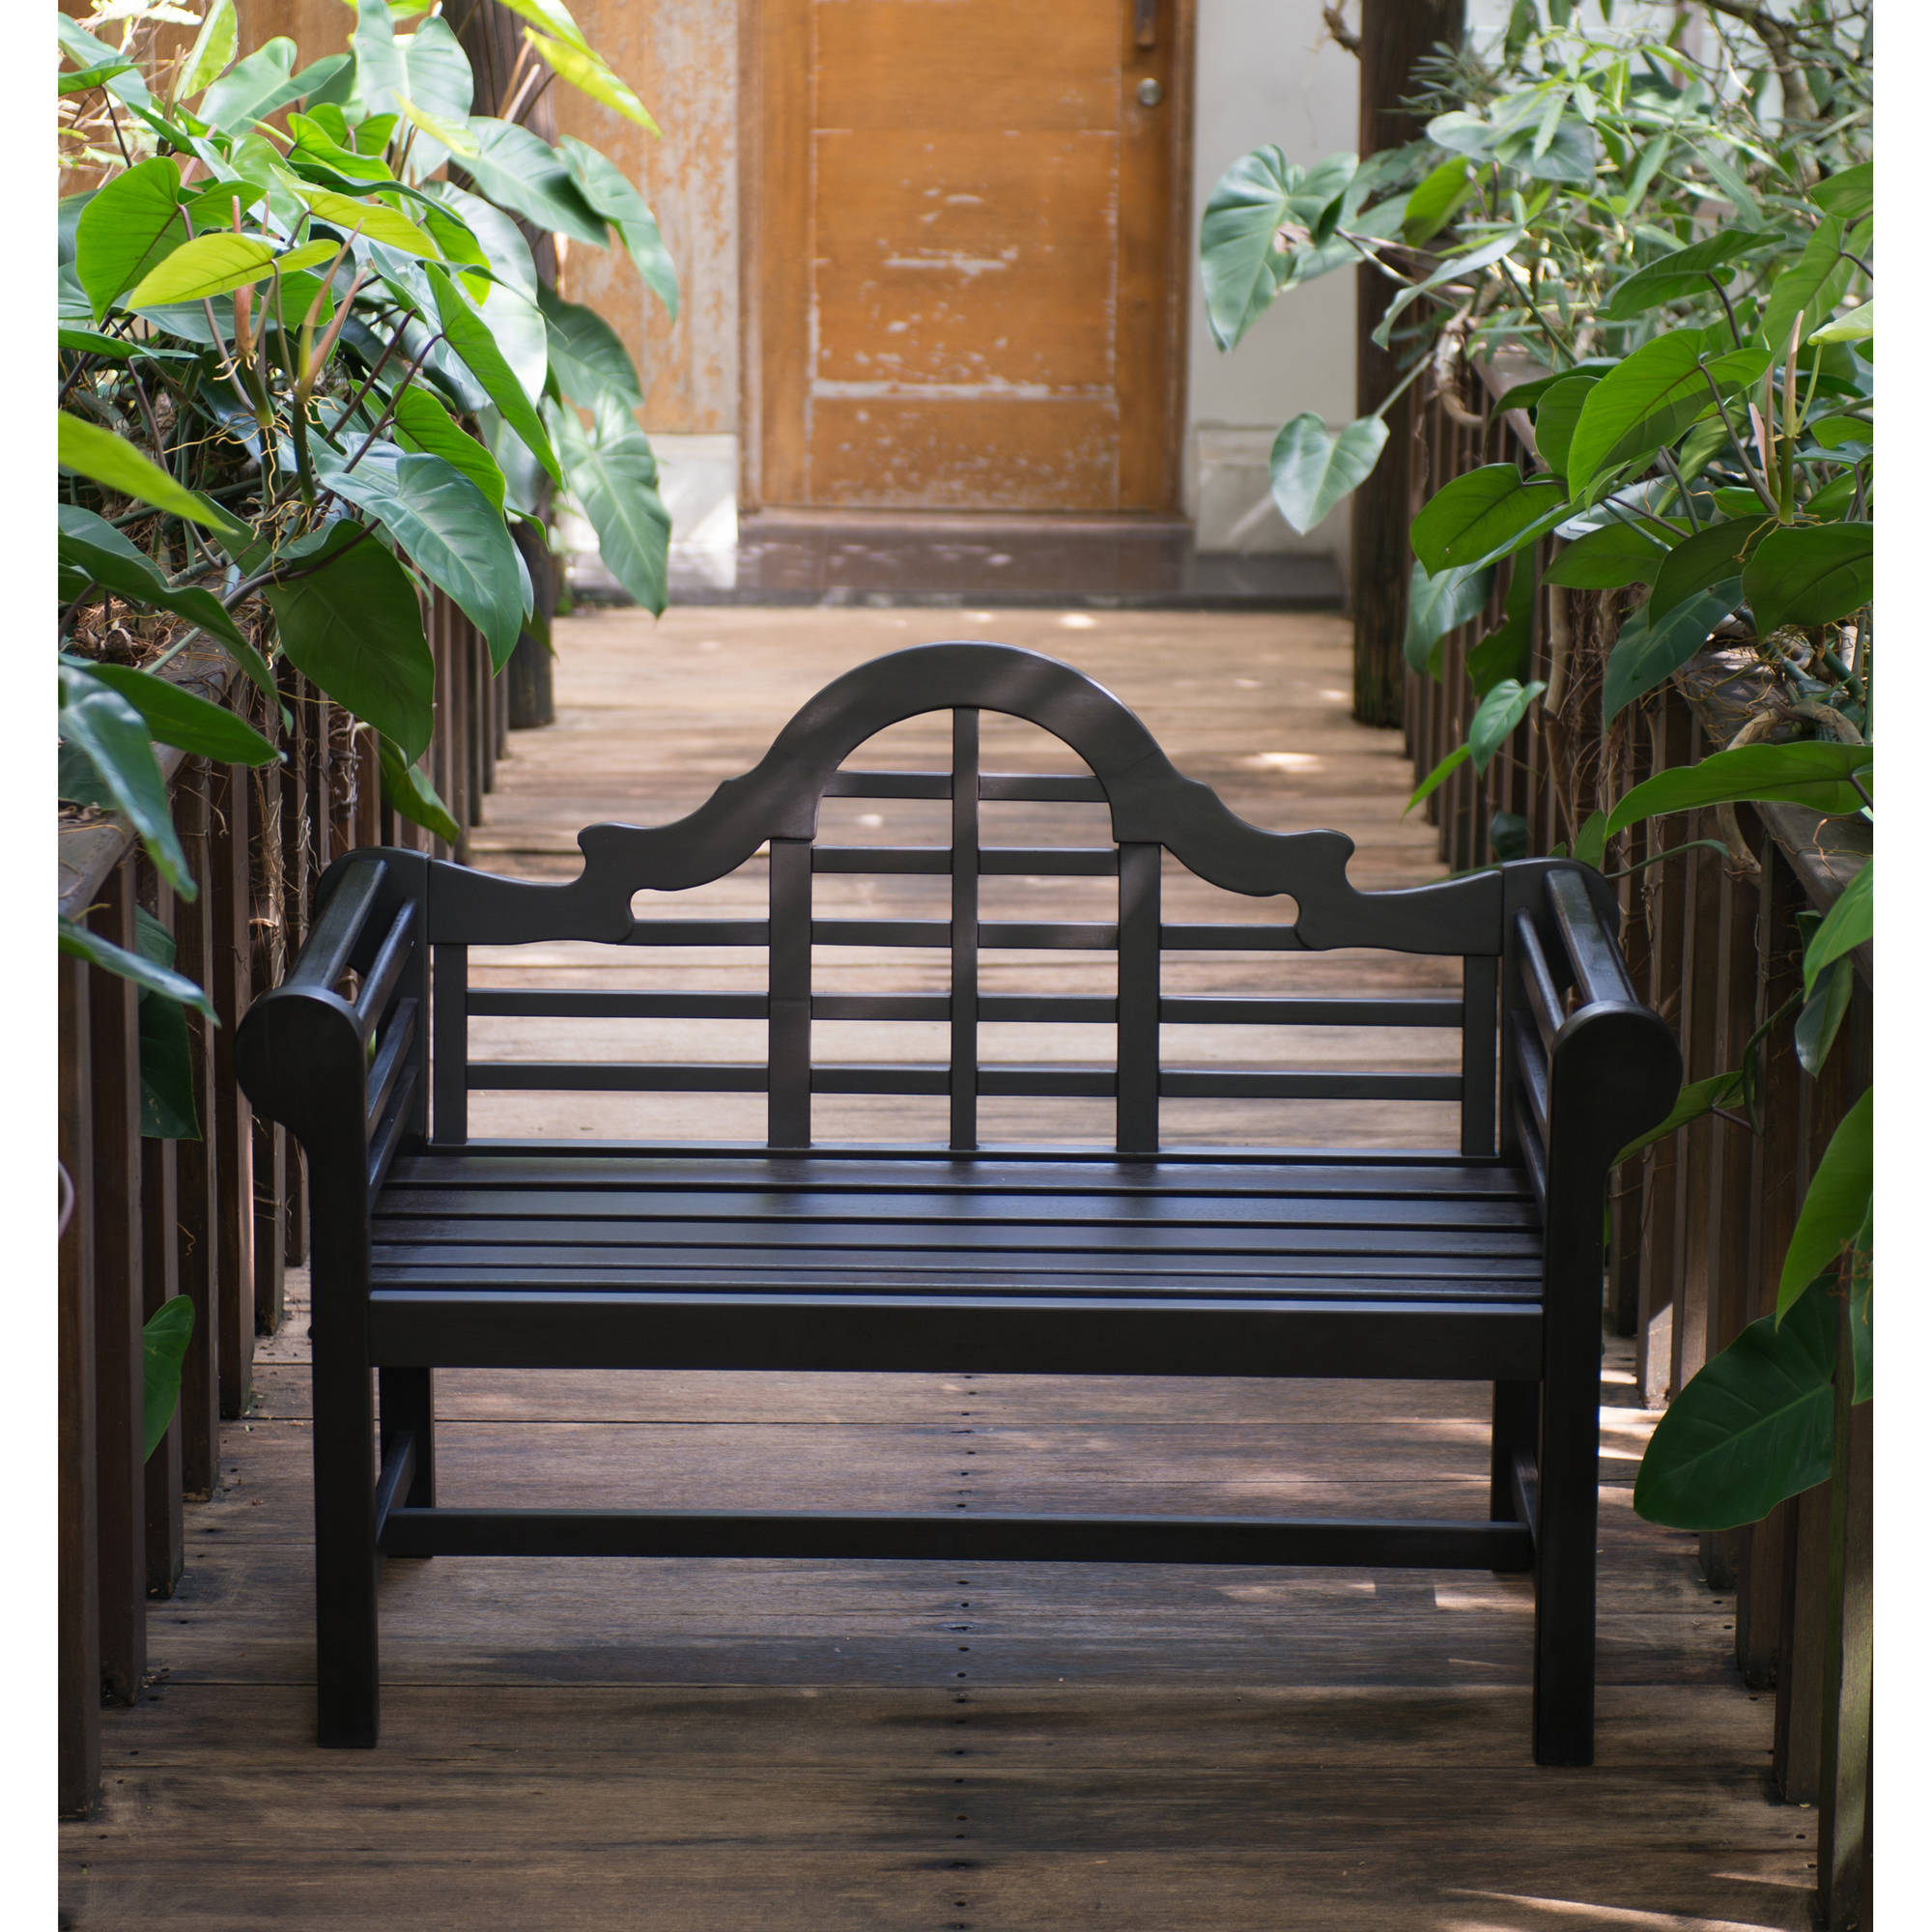 4' Lutyen's Bench, Dark Brown by Outdoor Benches